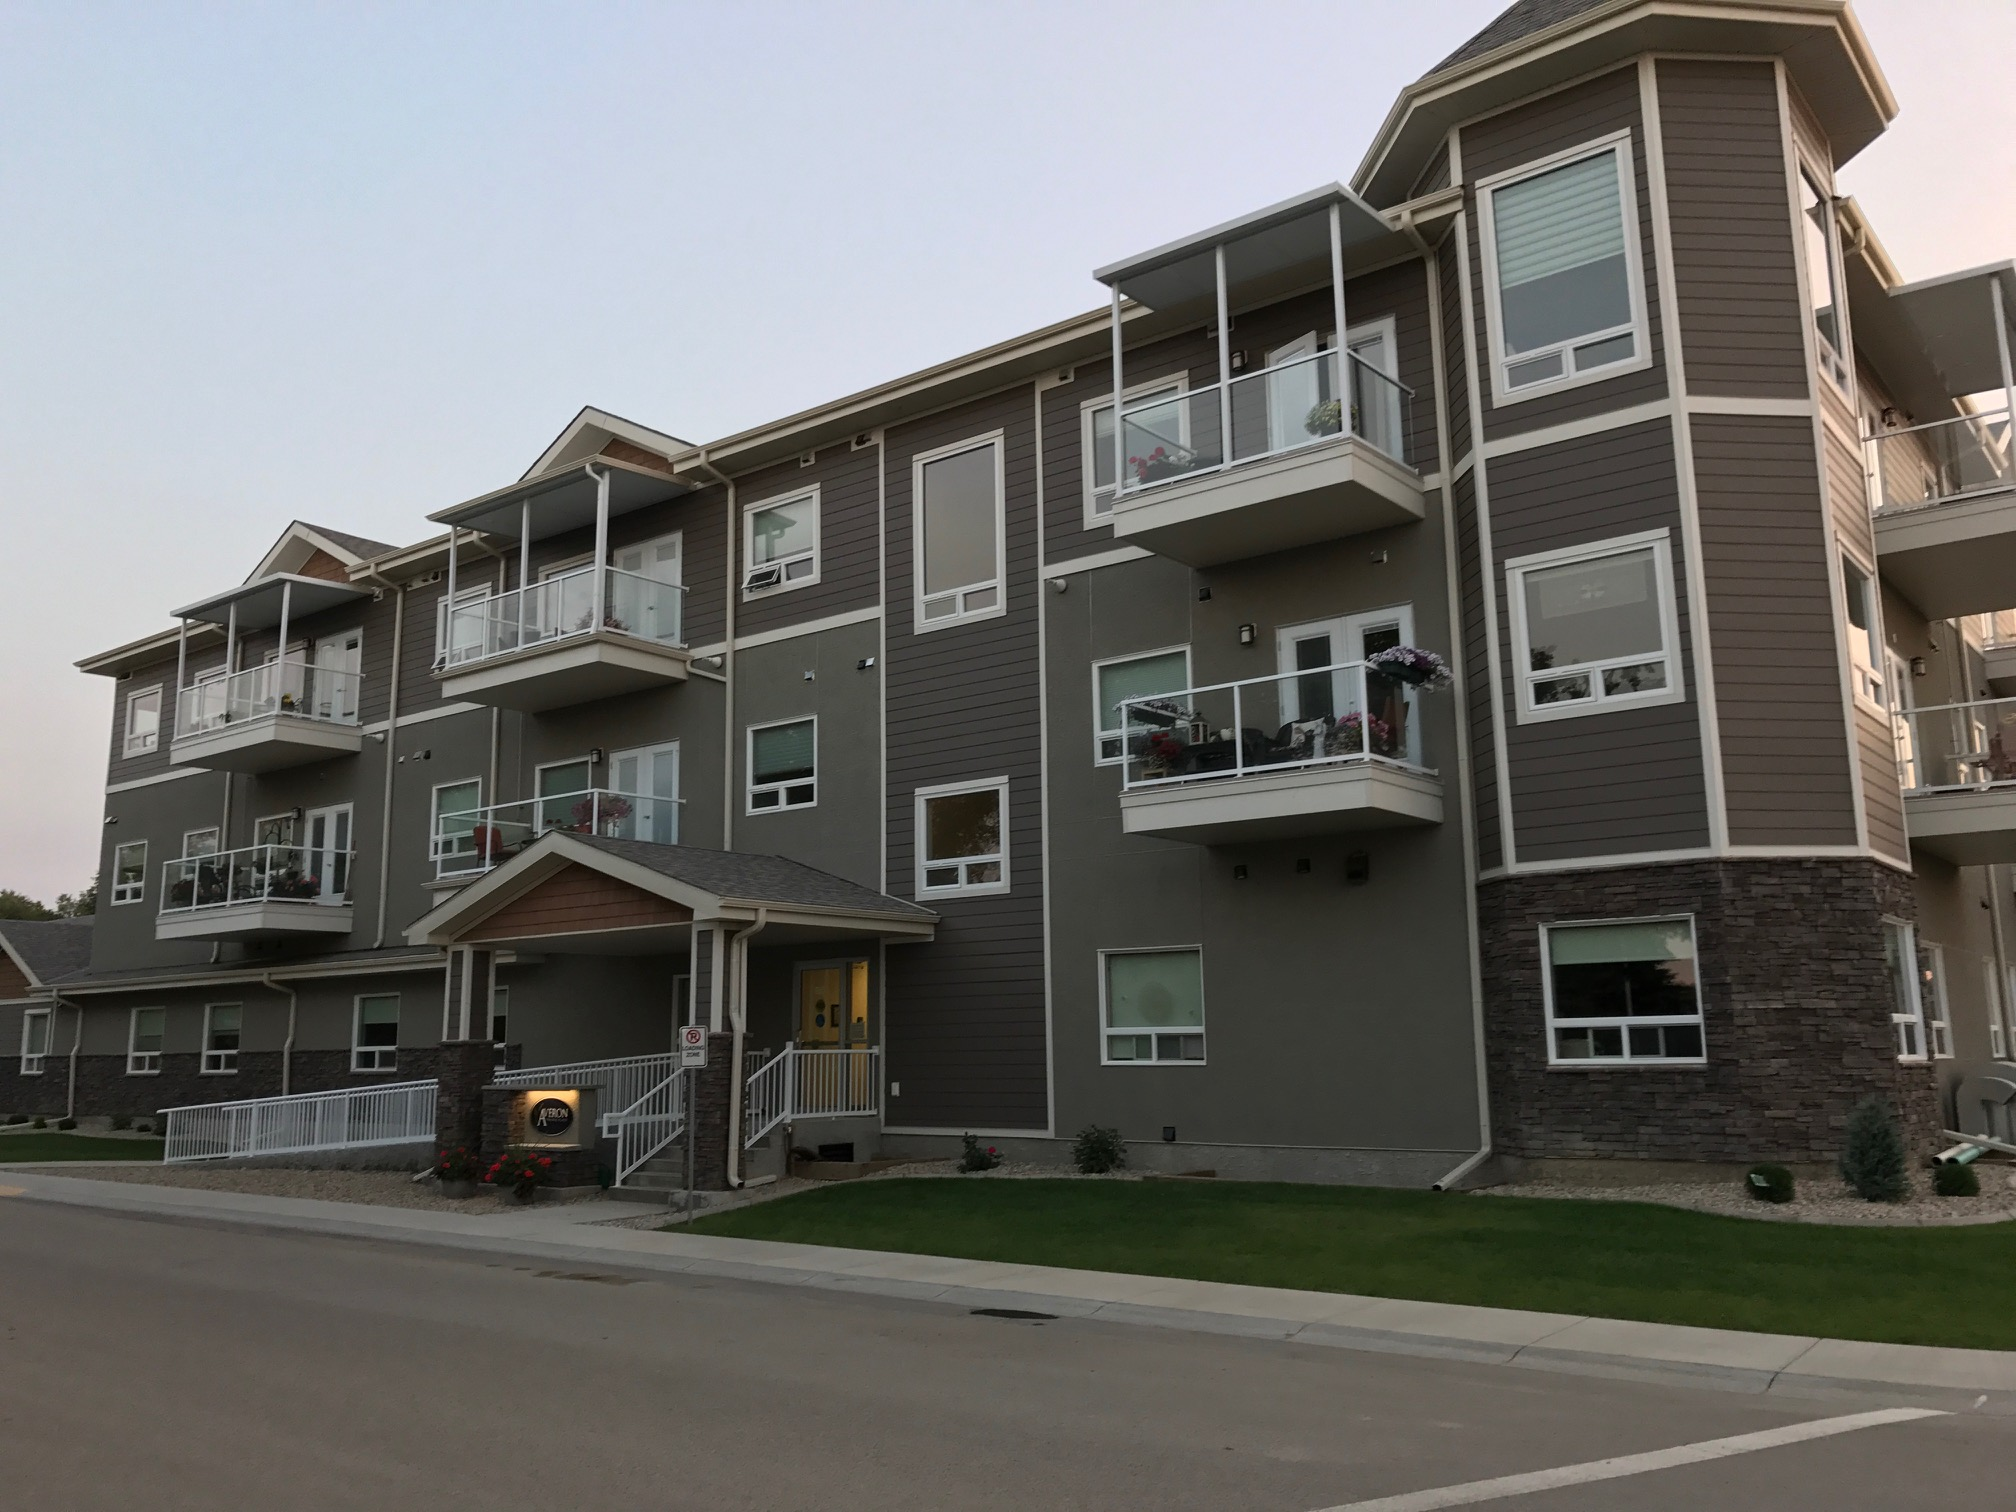 CONDO # 204 510 4th Ave Rosthern